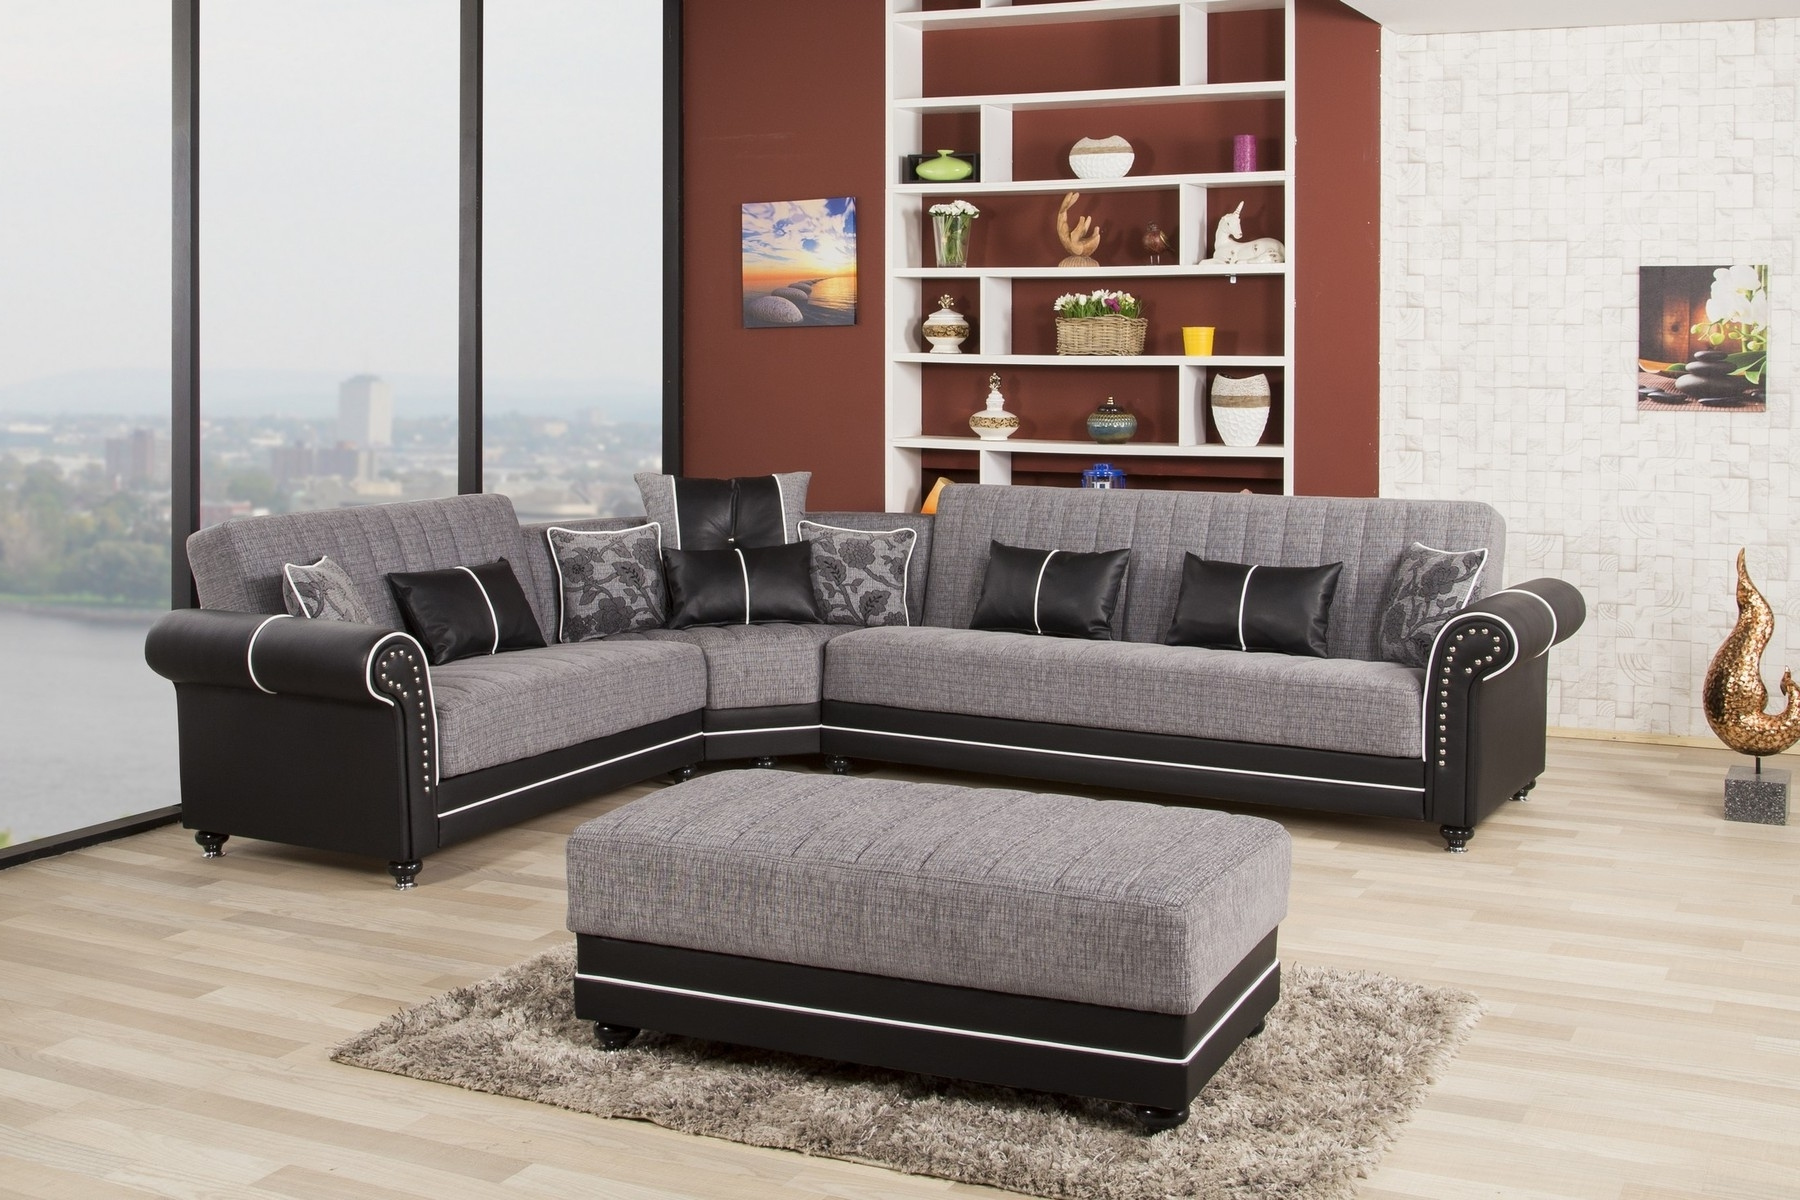 Latest Royal Furniture Sectional Sofas With Royal Home Gray Sectional Sofa Royalhome Casamode Furniture (View 5 of 20)